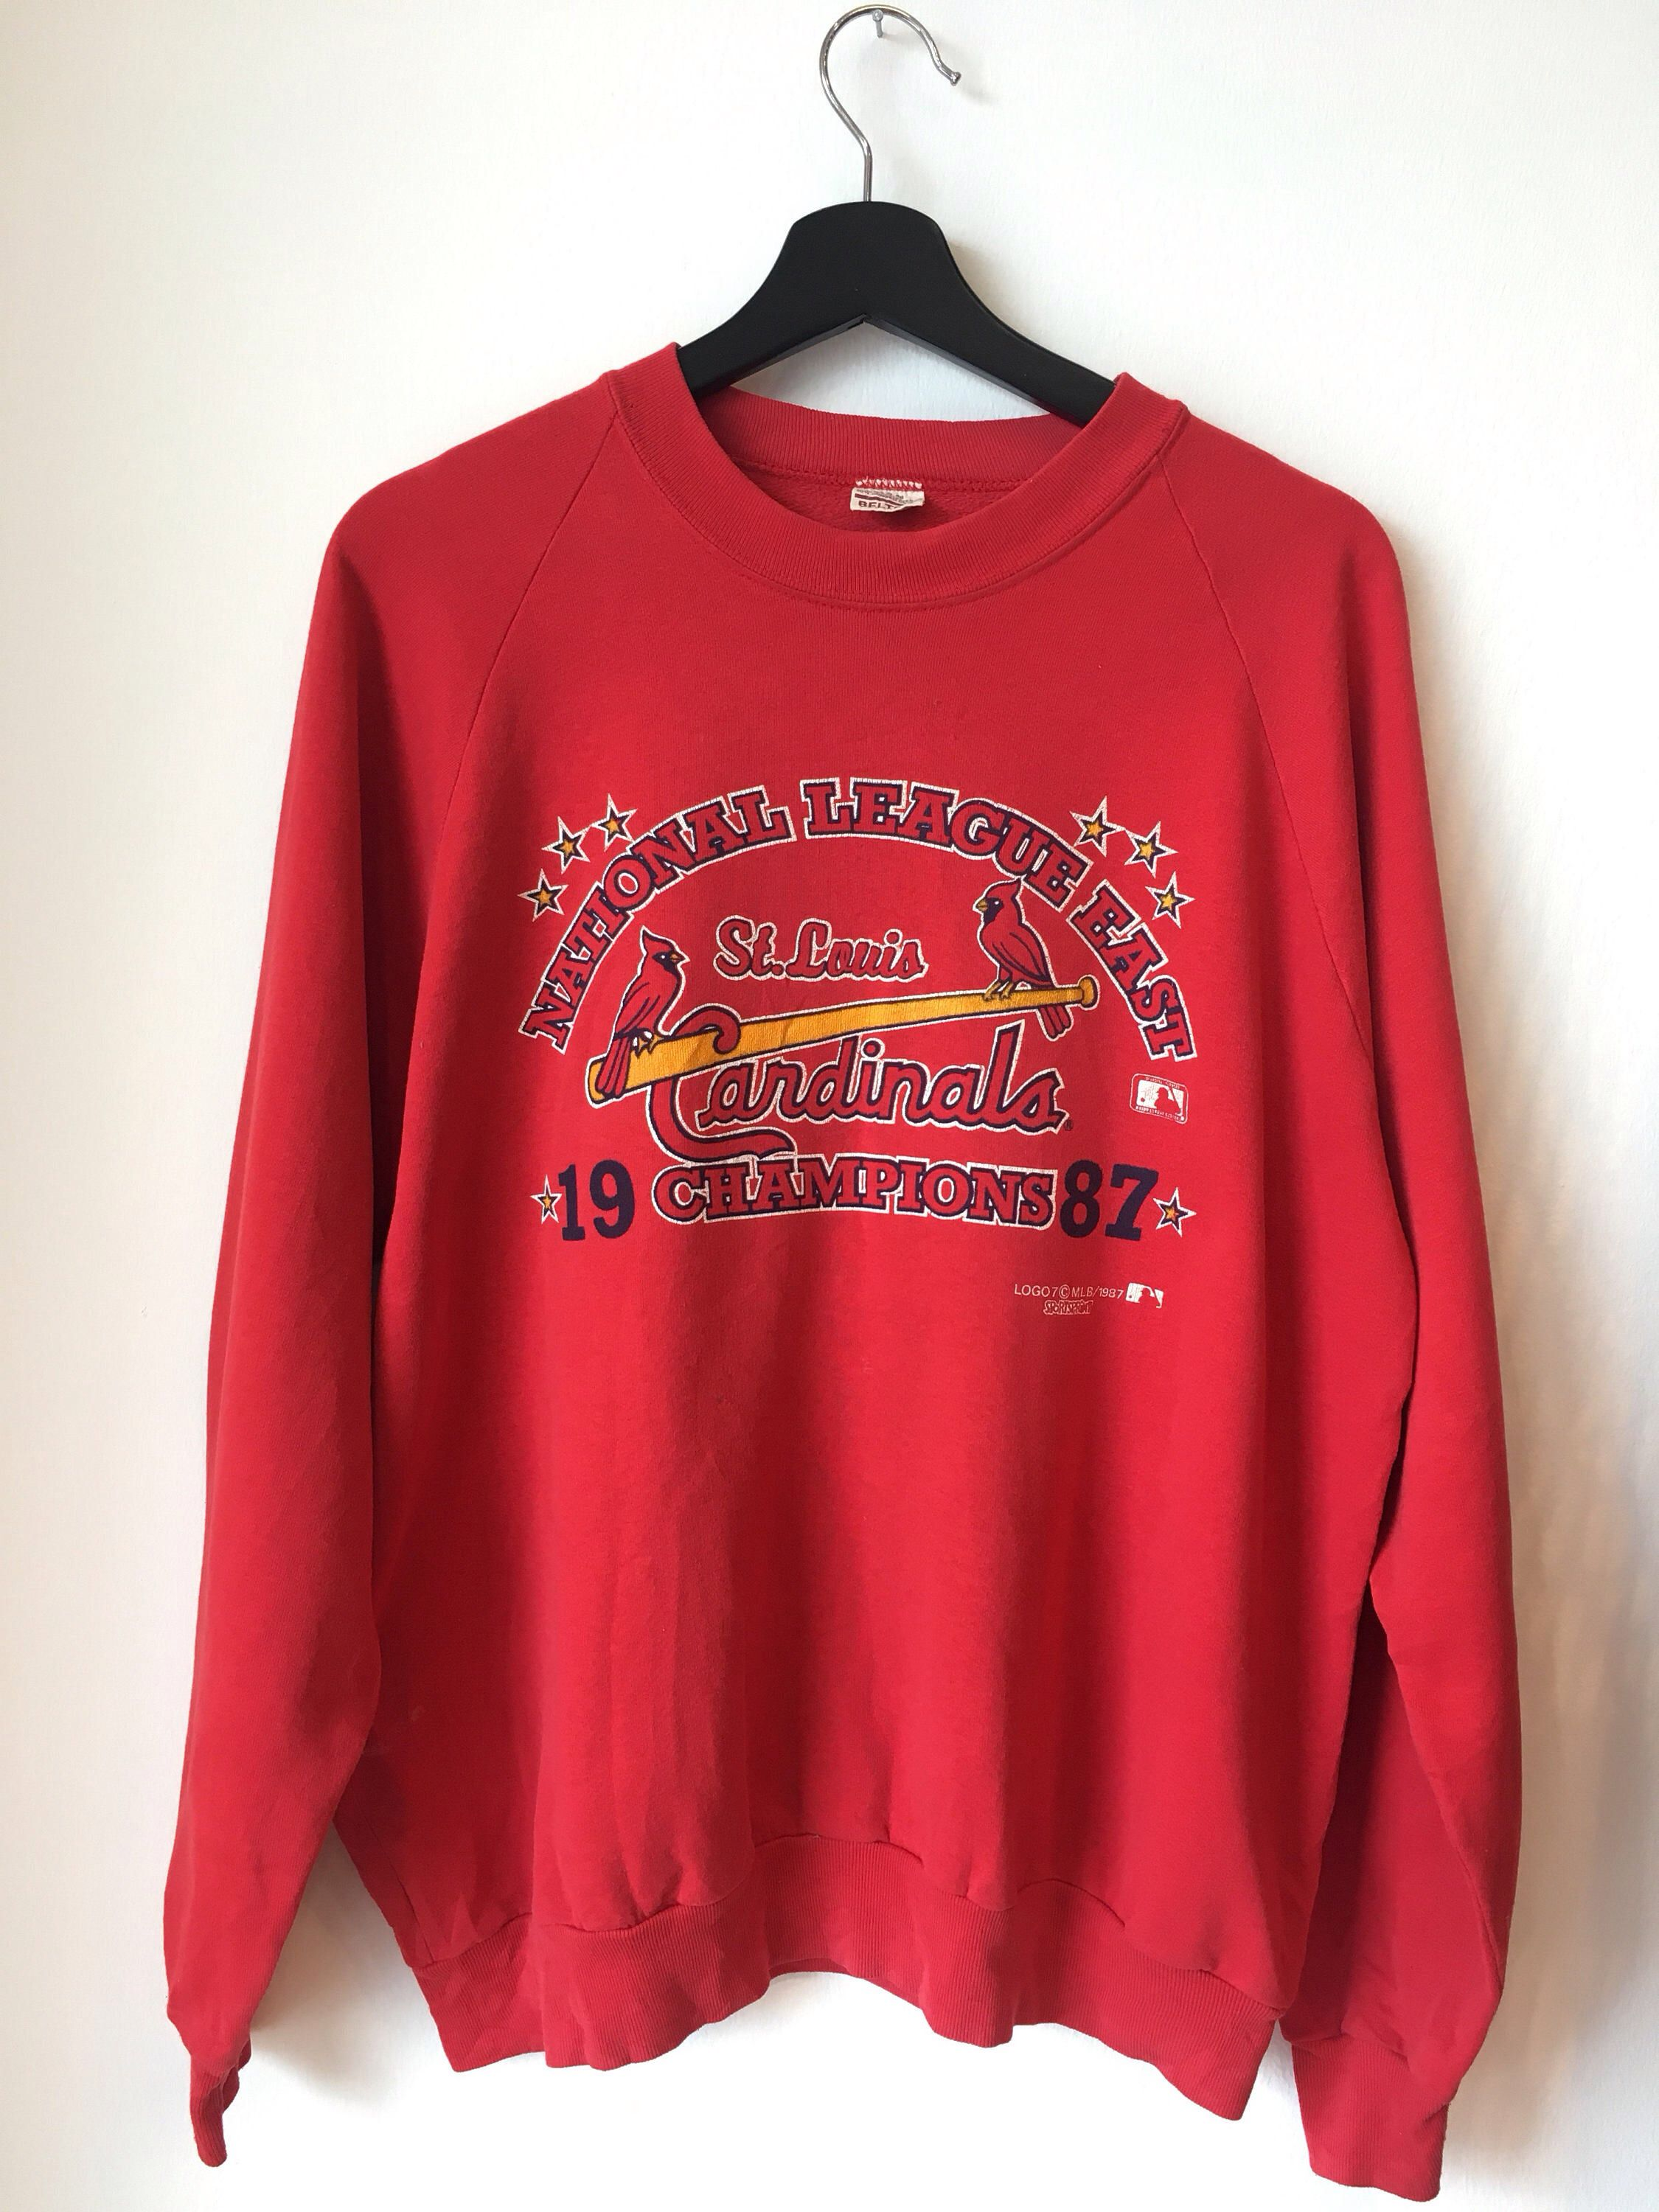 Vintage 80s St Louis Cardinals Champions National League East Etsy In 2020 Sweatshirts Used Clothing Baseball Sweatshirts